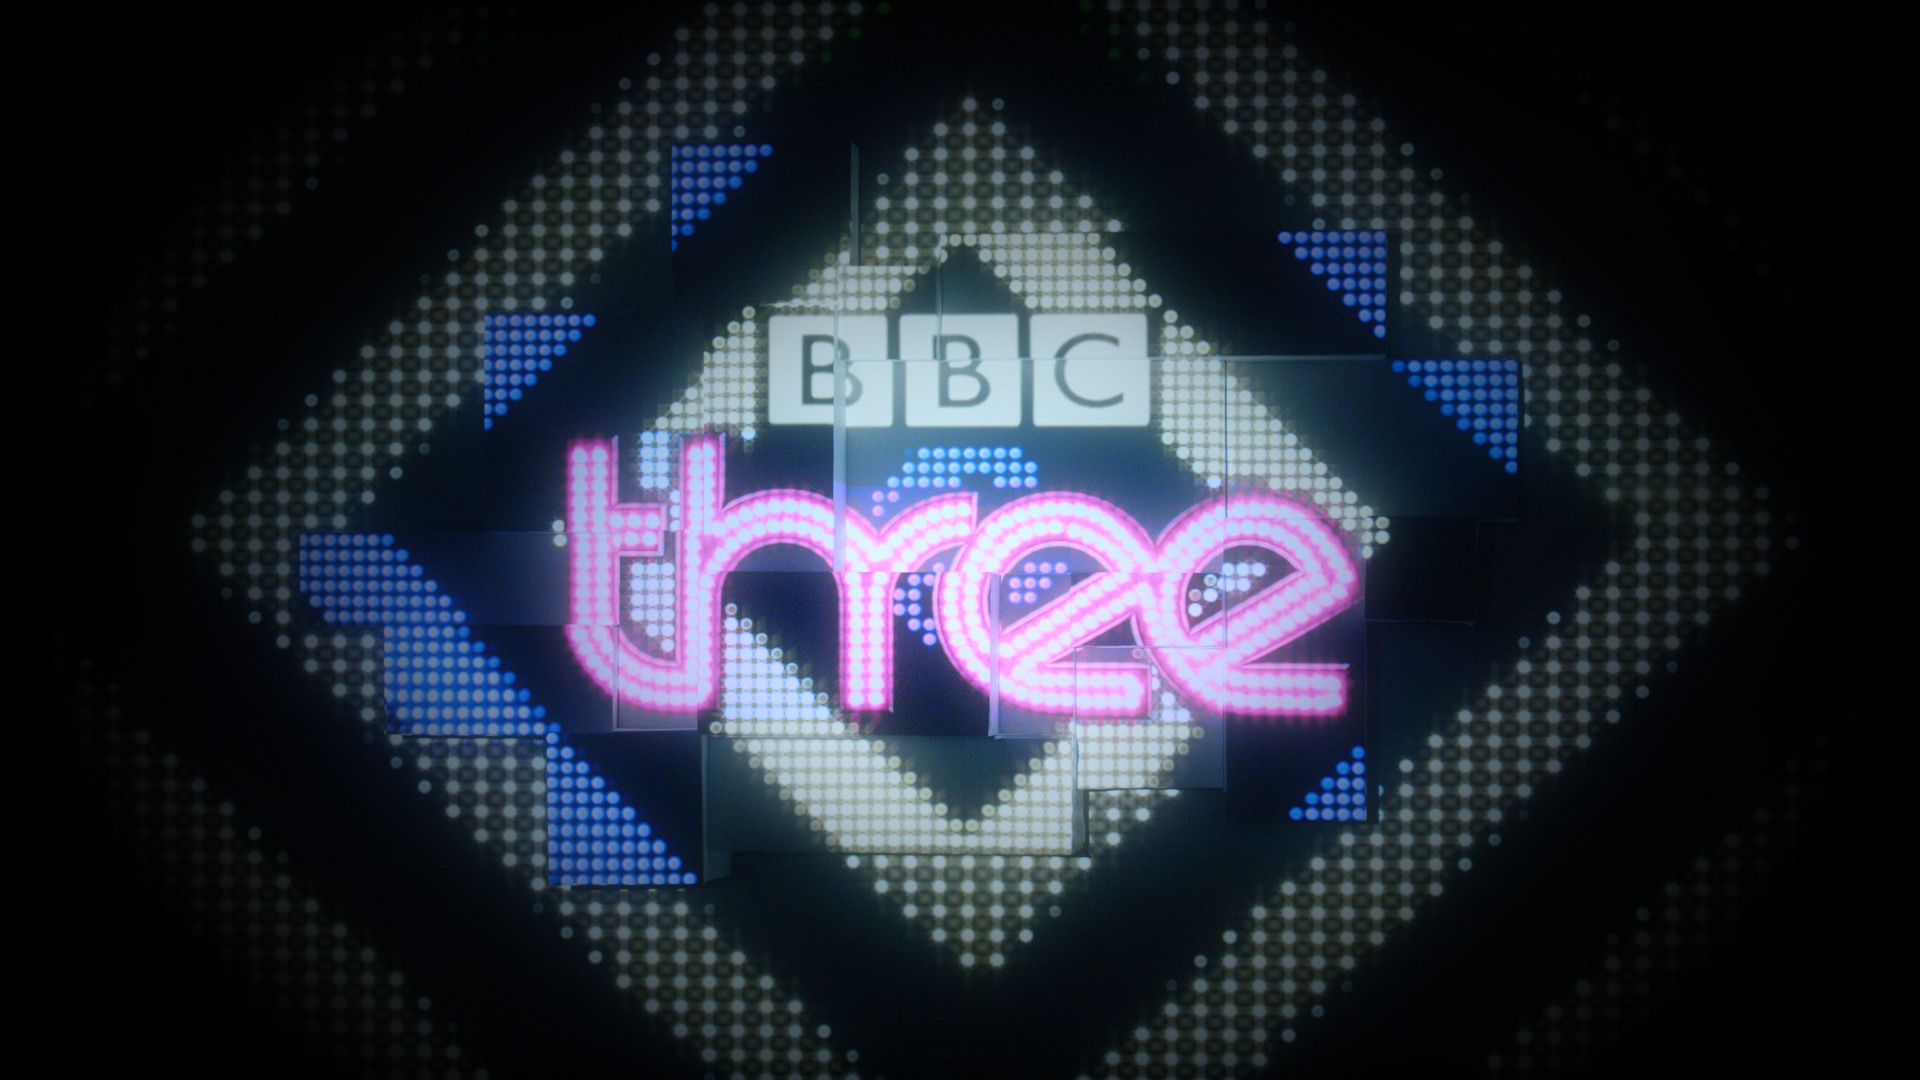 bbc3 dating A new dating show giving singles the chance to look around their prospective date's home is coming to bbc three hot property, hosted by youtube star and singer yung filly, gives contestants a.